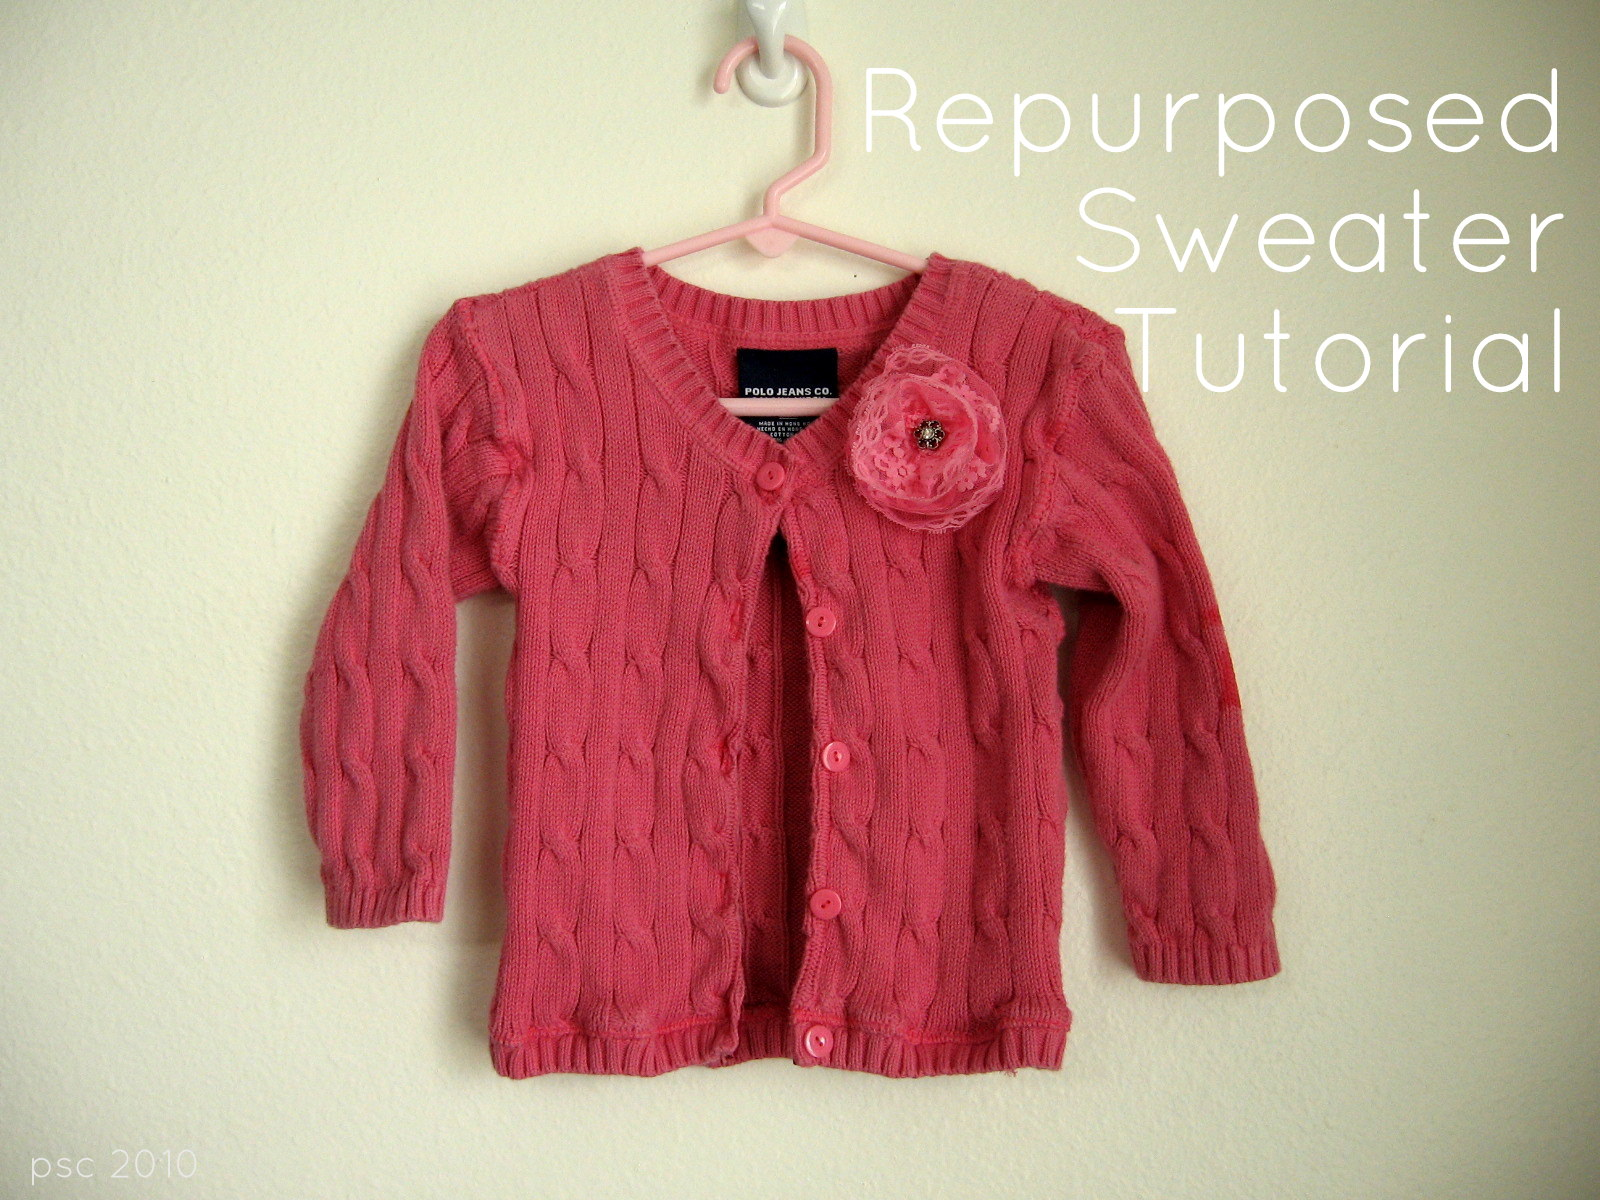 Pickup Some Creativity: Repurposed Sweater Tutorial